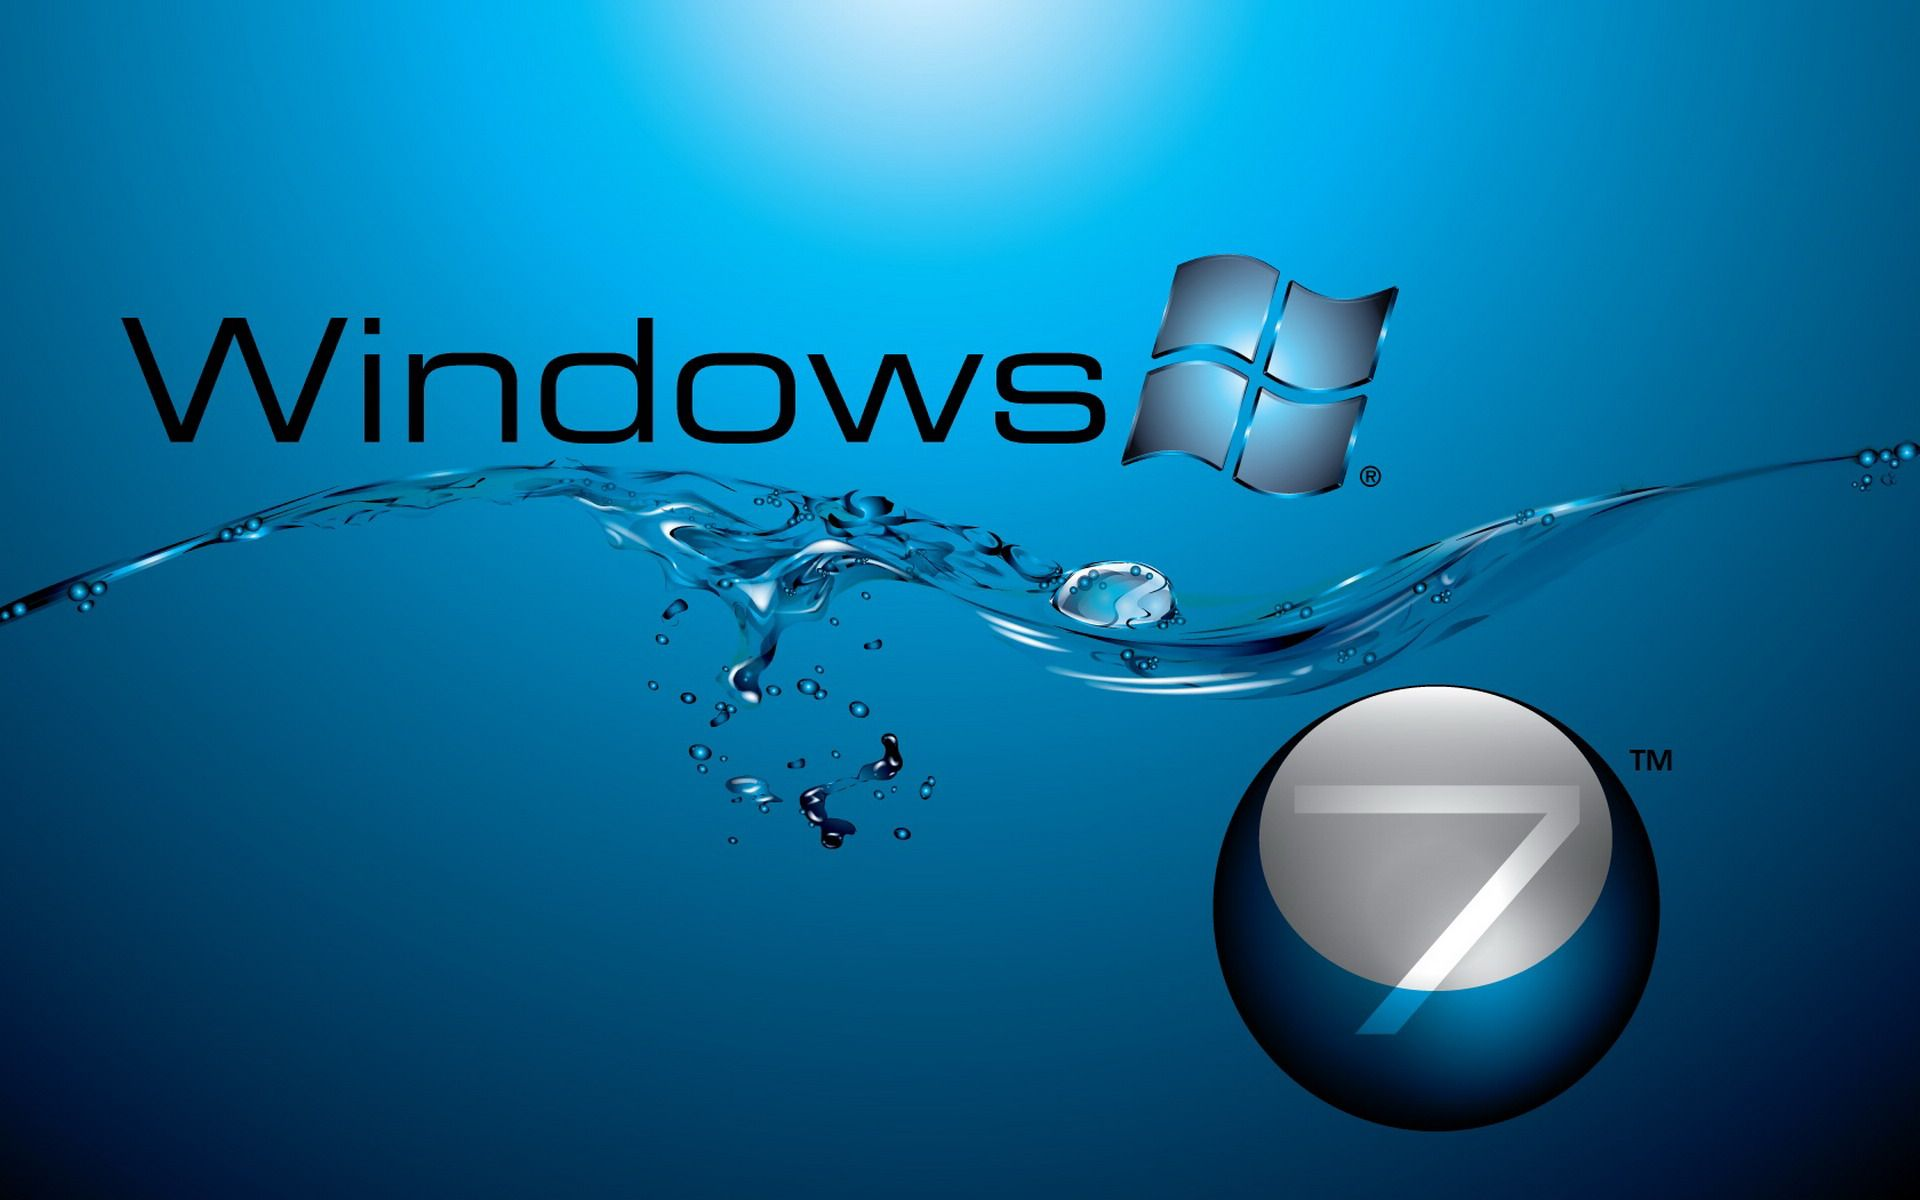 windows 7 ultimate free download iso 64 bit and 32 bit